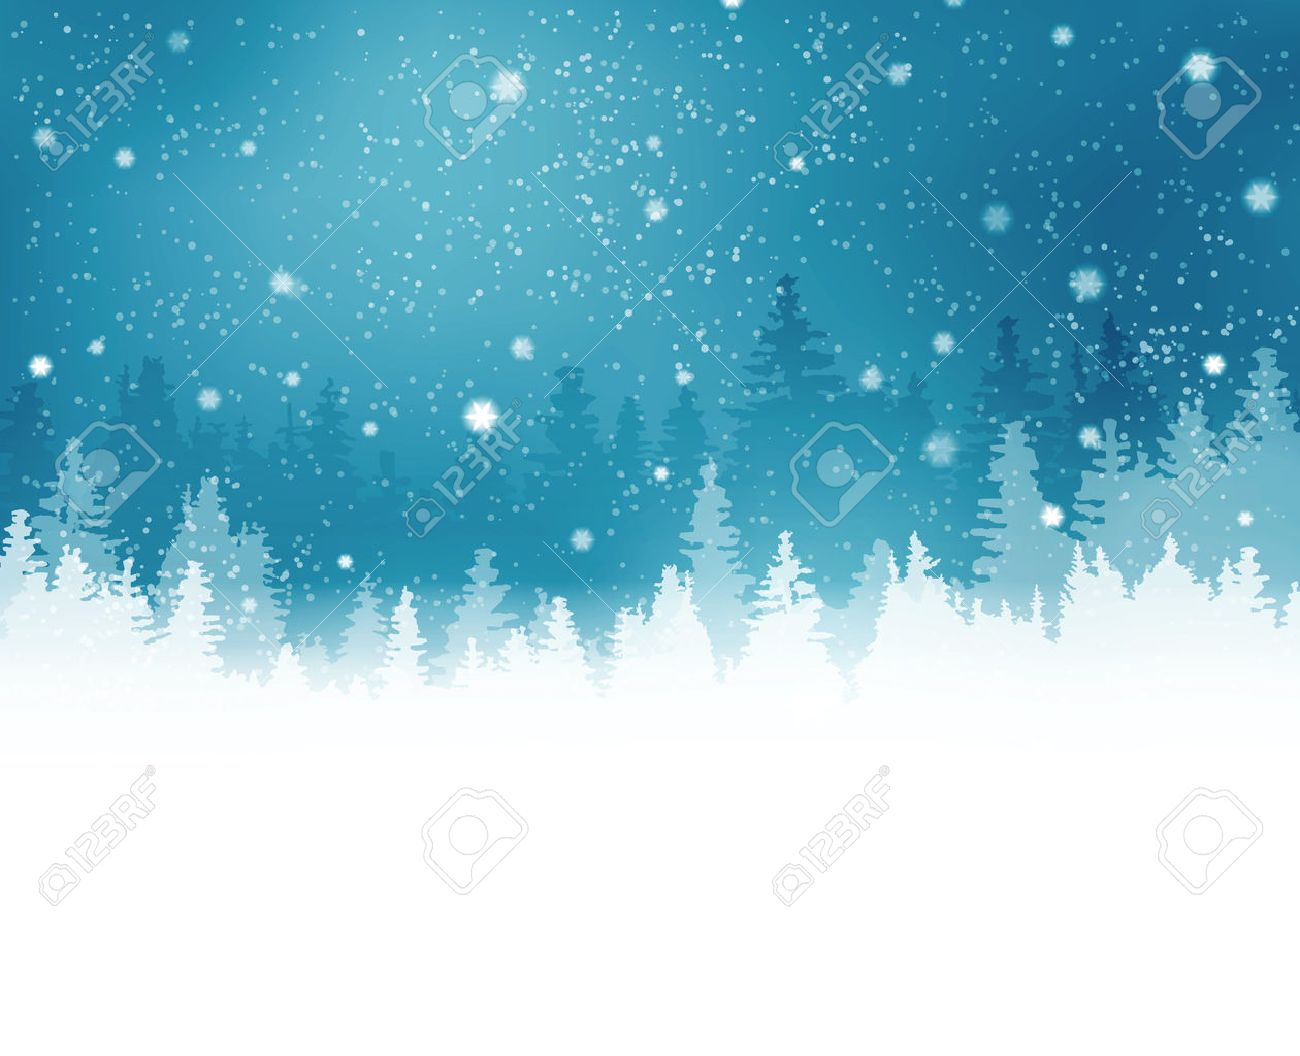 Abstract winter background with rows of fir tree silhouette and snowfall. Peaceful winter landscape in shades of blue. Copy space. - 33803058